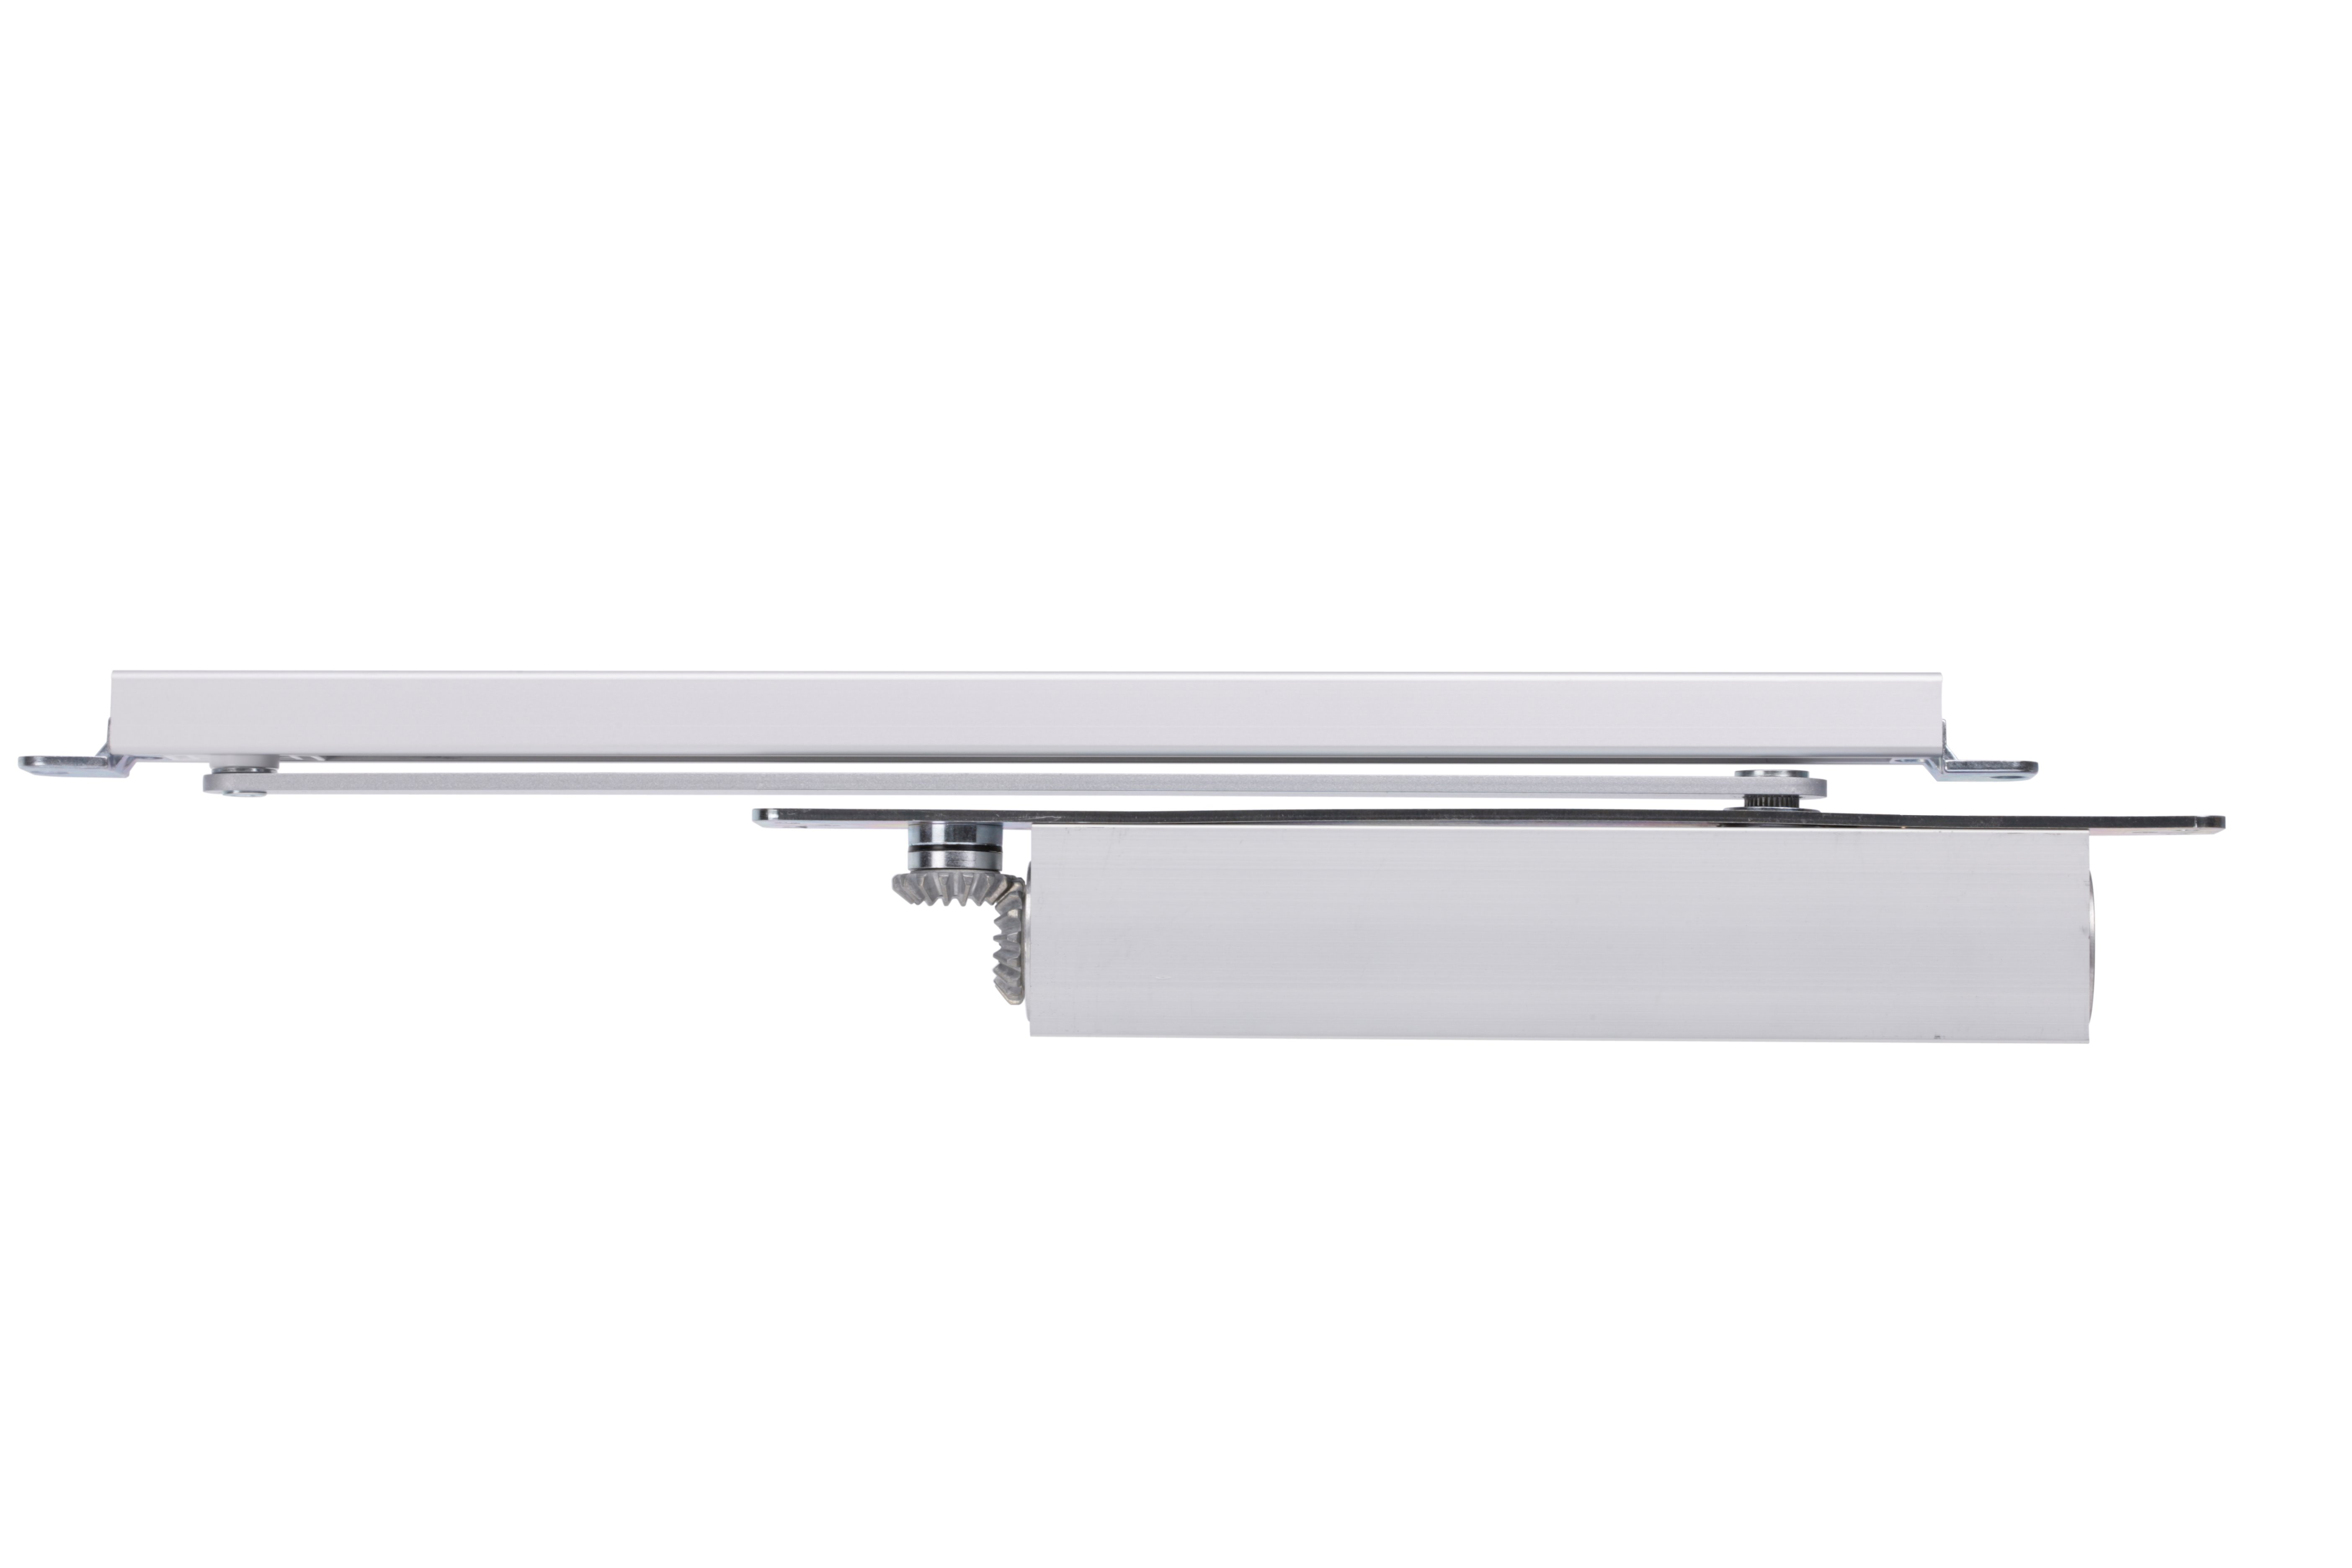 Dc860 Door Closer Door Closers Abloy Uk Locking